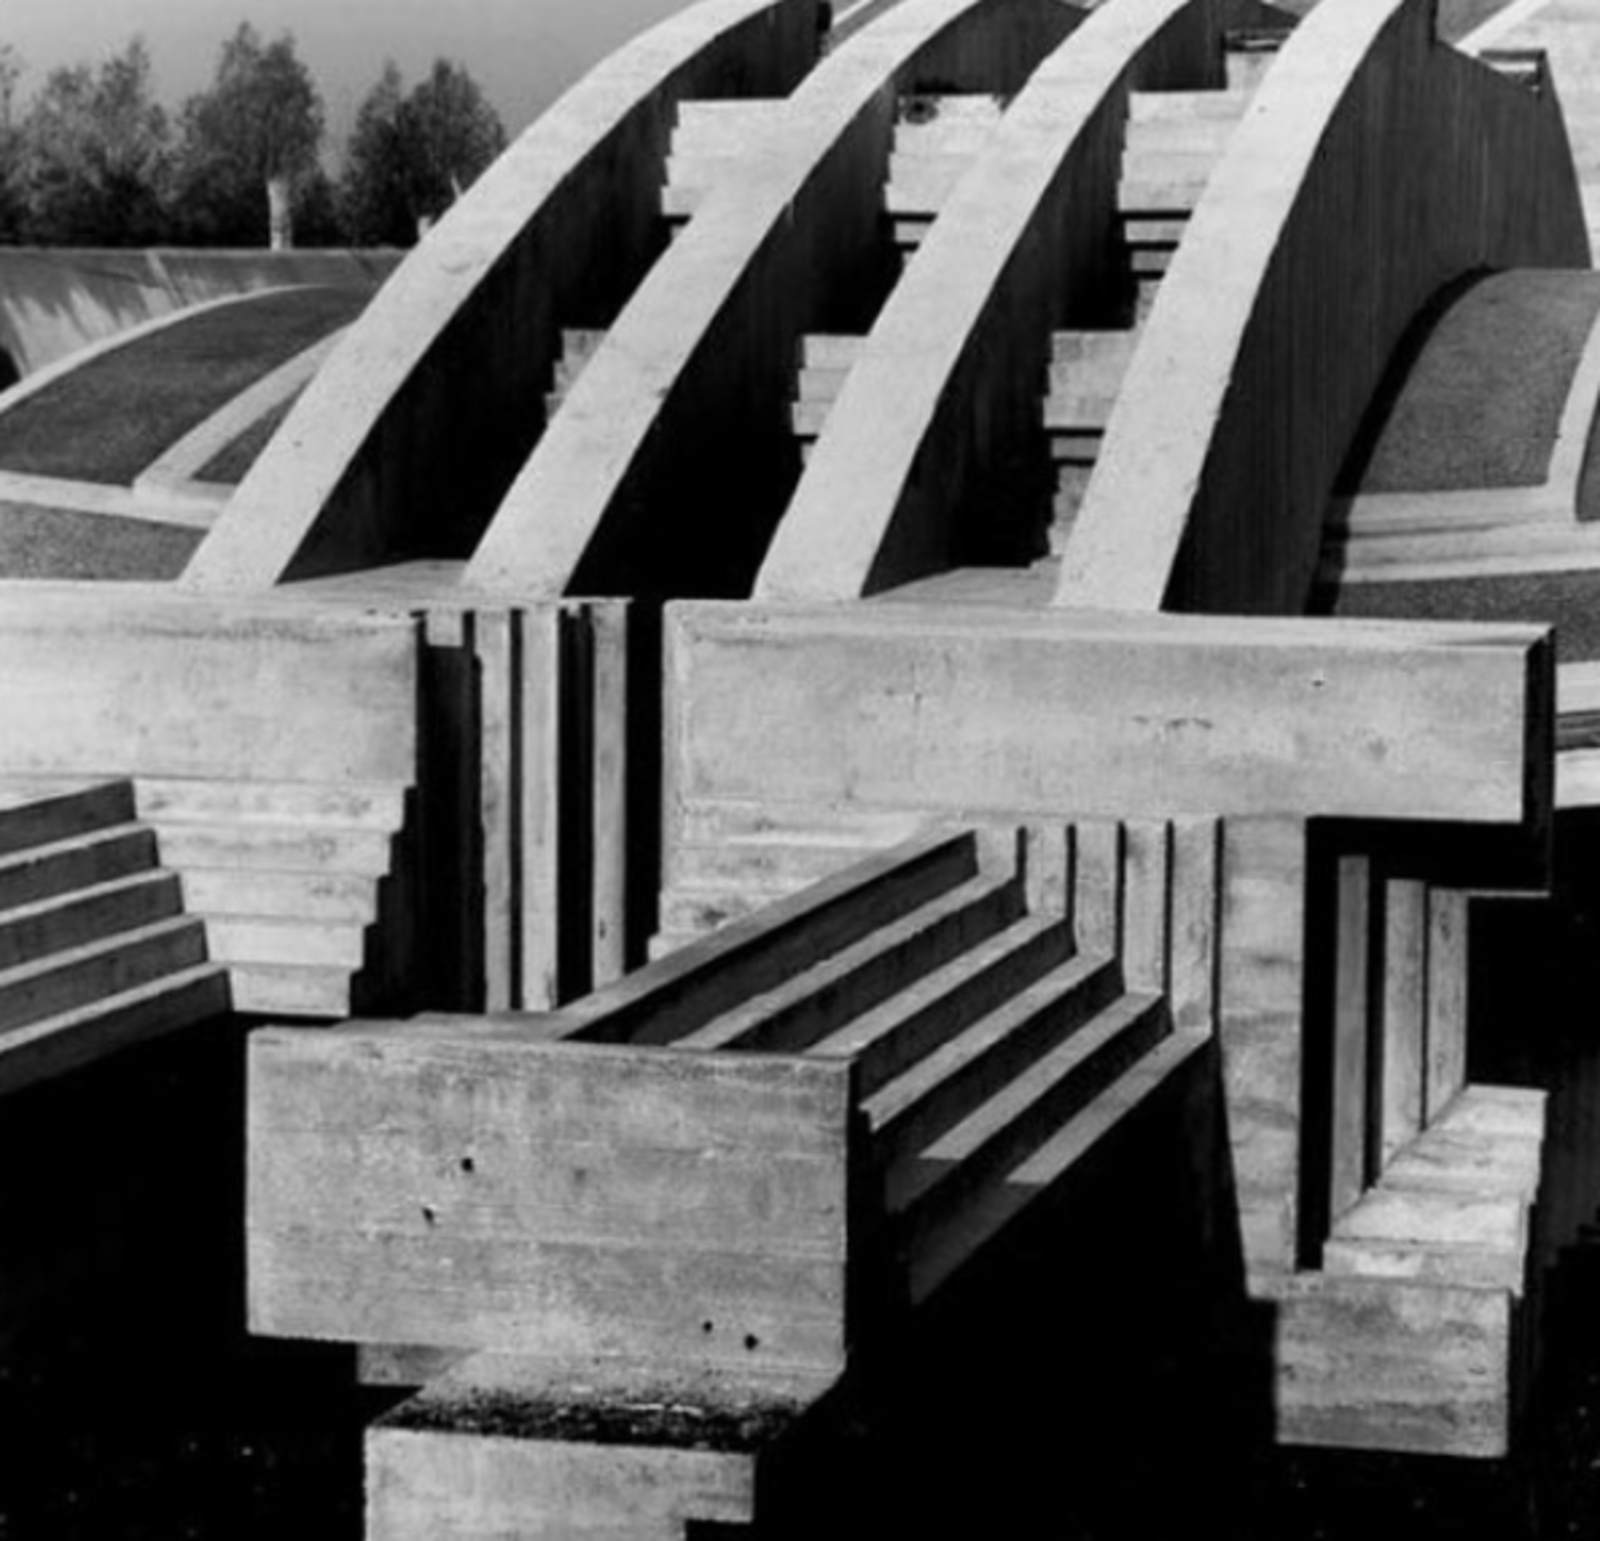 Carlos Scarpa's Brion Cemetery near Treviso, Italy.  buildings from Instagram Account We Love: NYC Handbag-Maker Delves Into Furniture Design